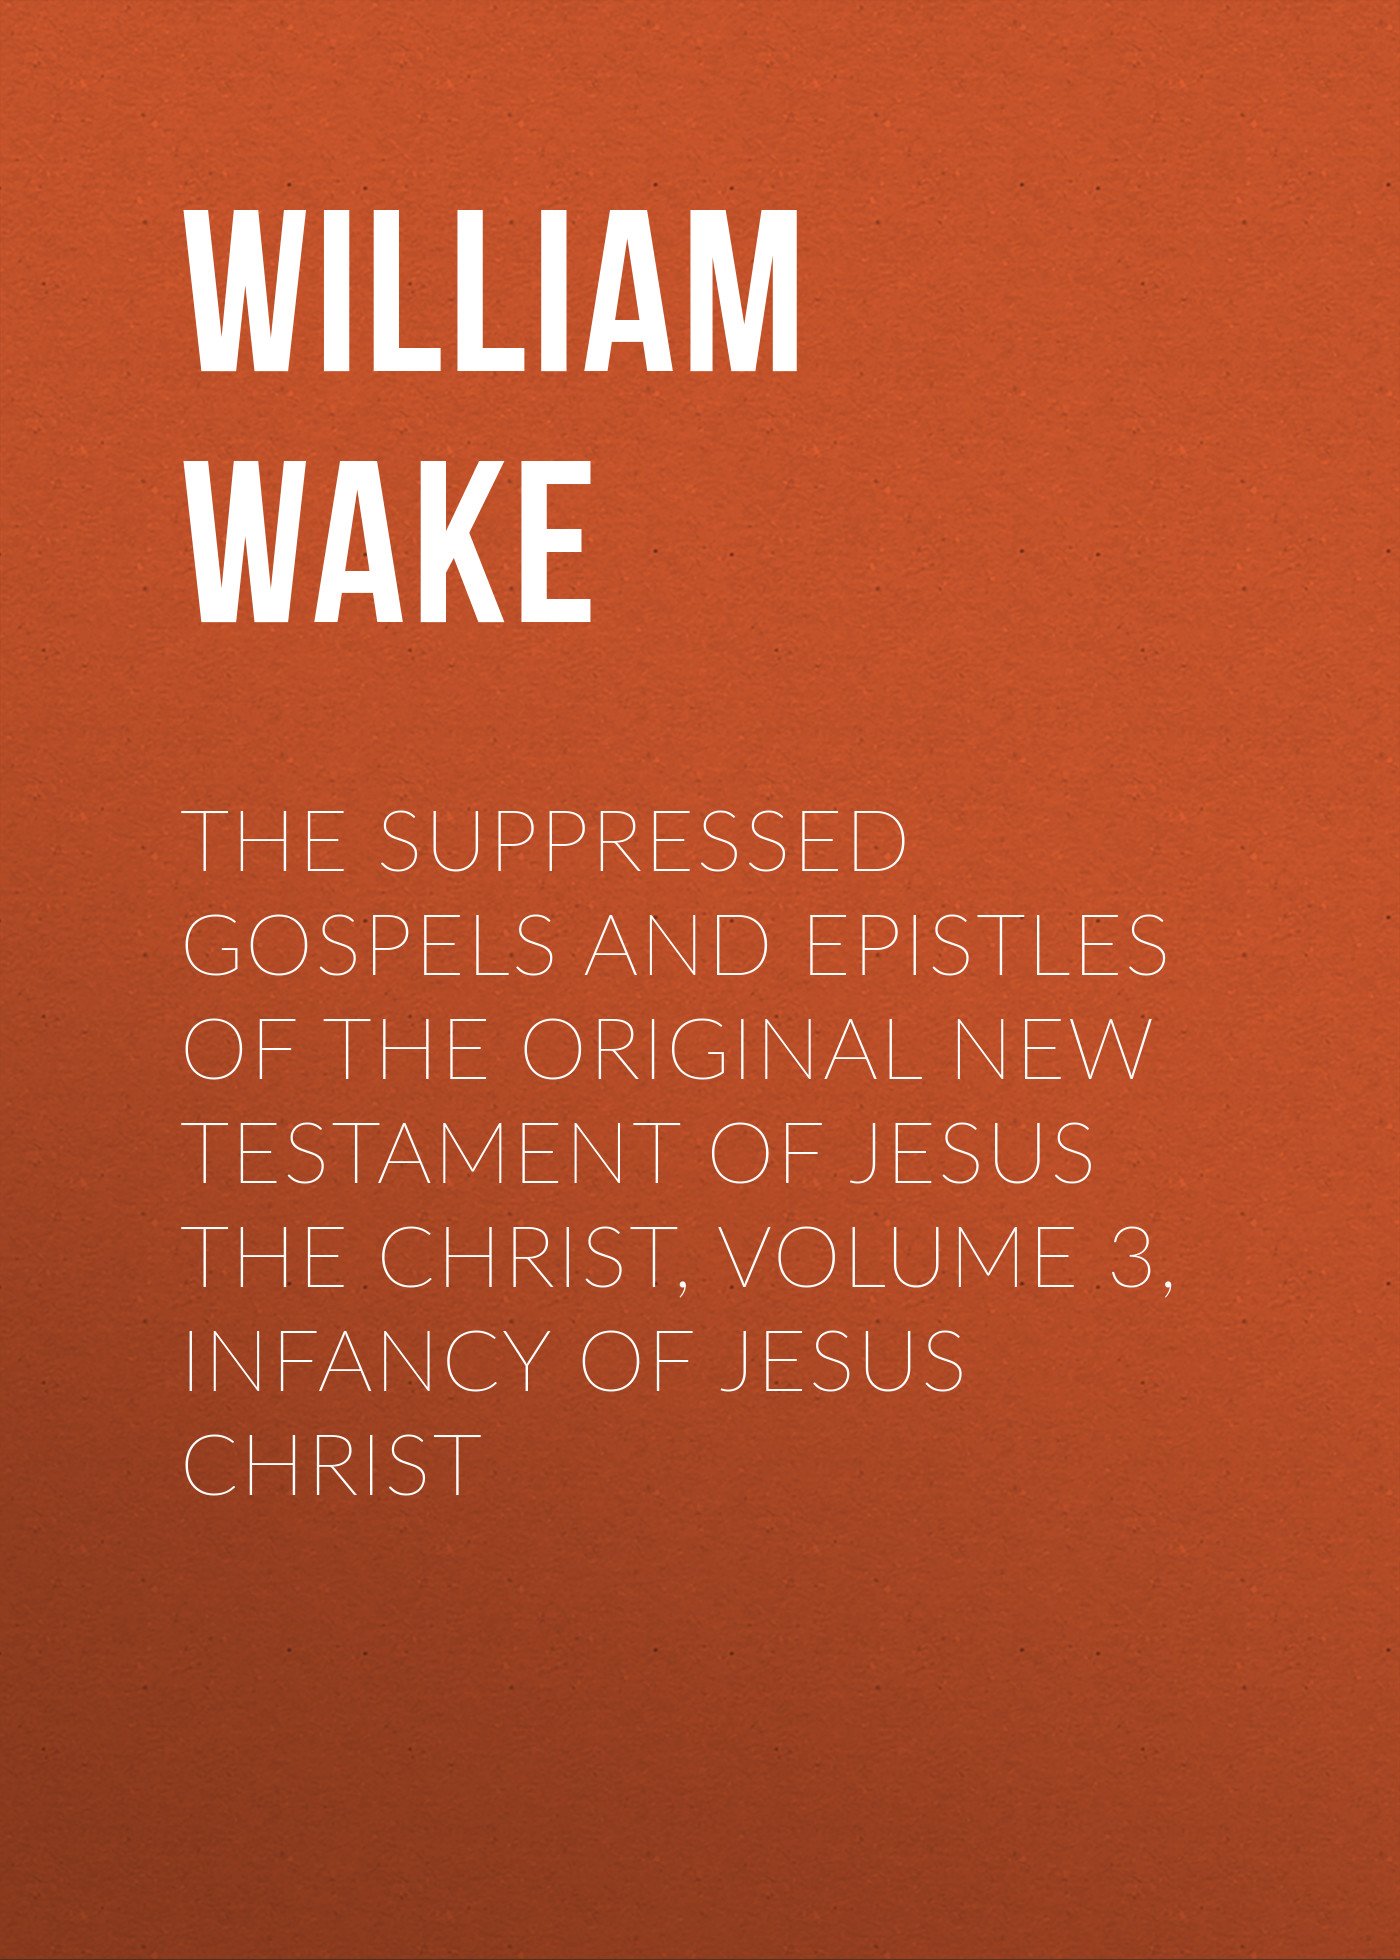 William Wake The suppressed Gospels and Epistles of the original New Testament of Jesus the Christ, Volume 3, Infancy of Jesus Christ david milne the years and eras of the life of christ